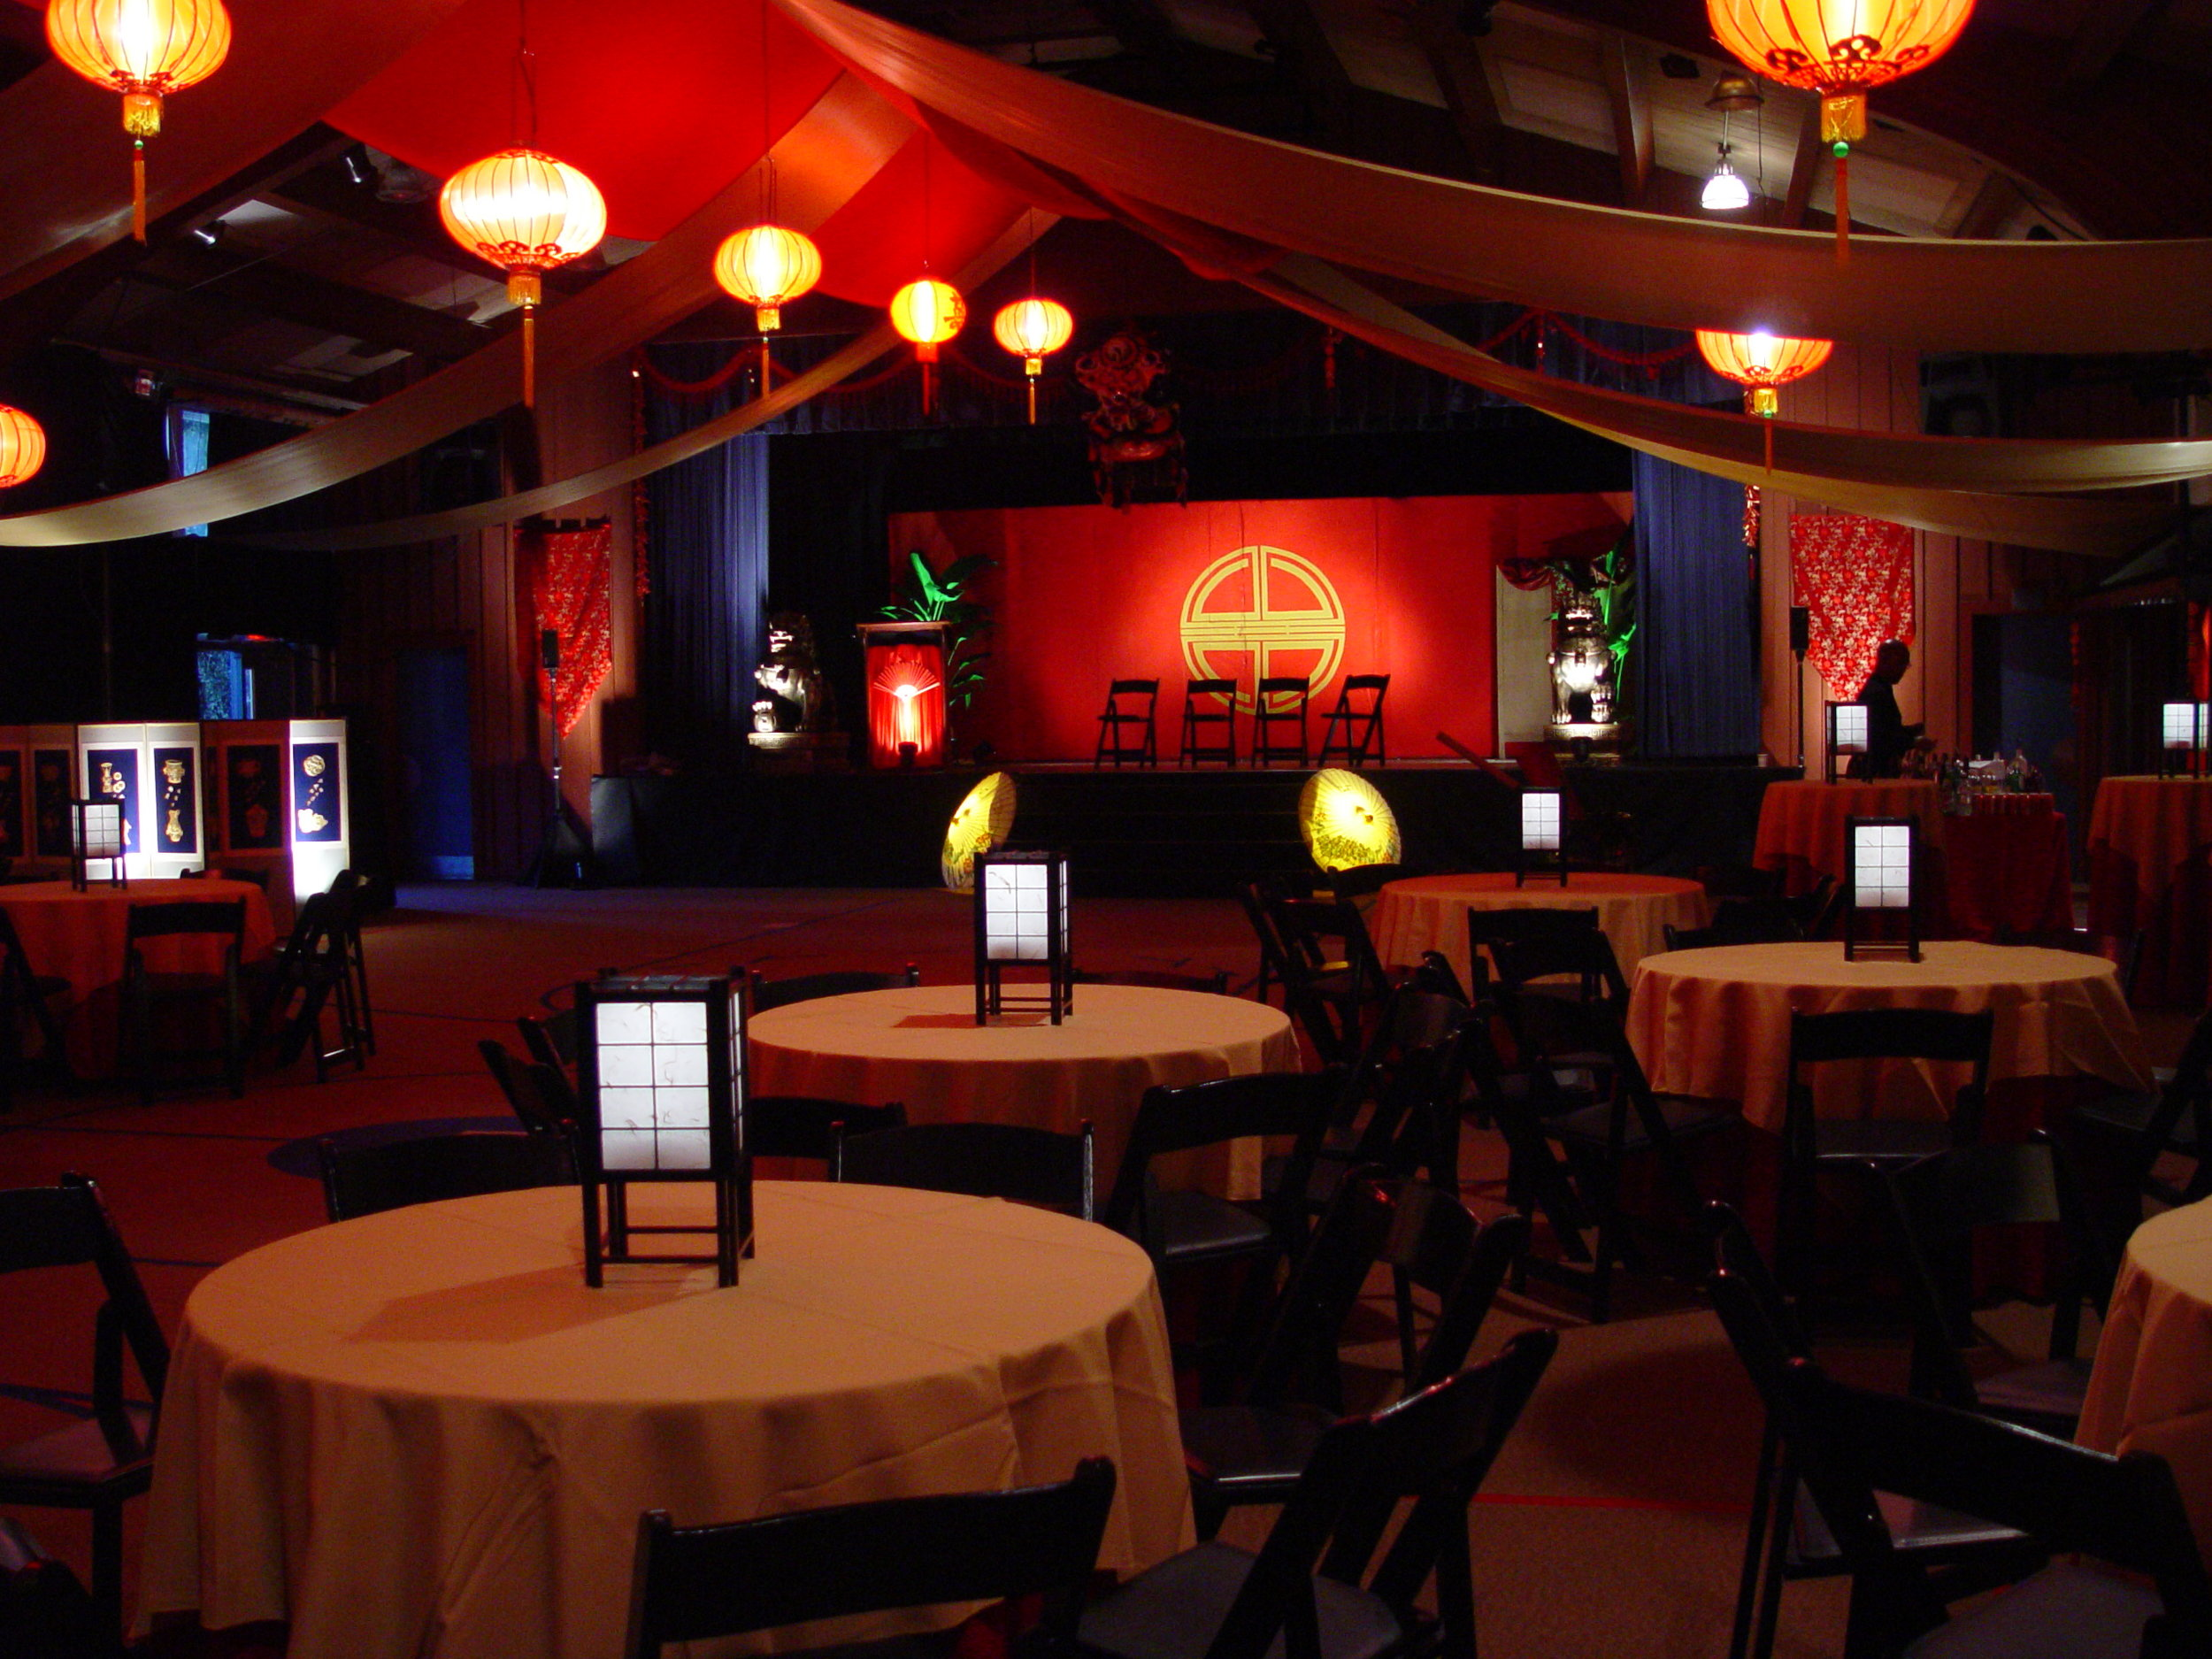 asian+inspired+decor+props+centerpieces+lighting+rental+rentals+international+theme+themed+party+parties+nj+ny+pa+eggsotic+events.jpg